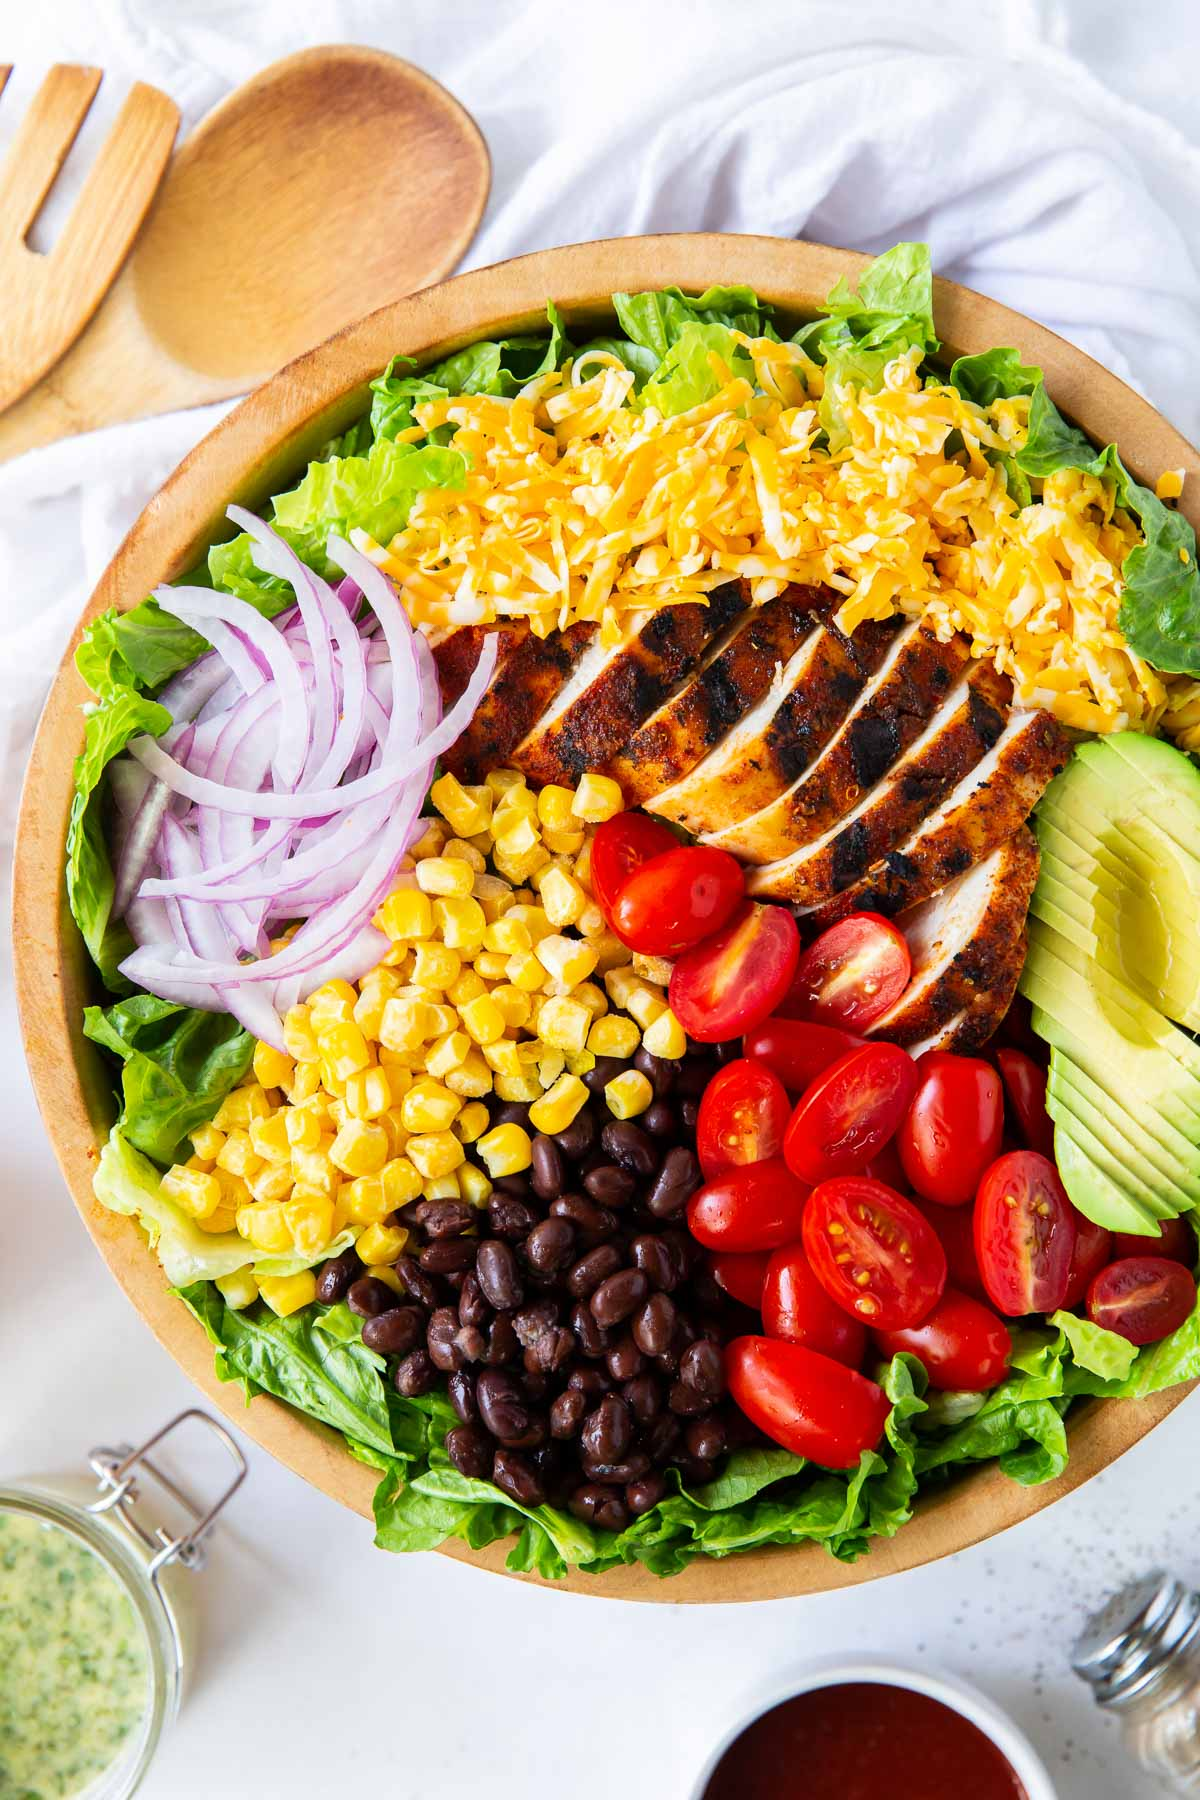 lettuce, grilled chicken and other salad ingredients in large bowl